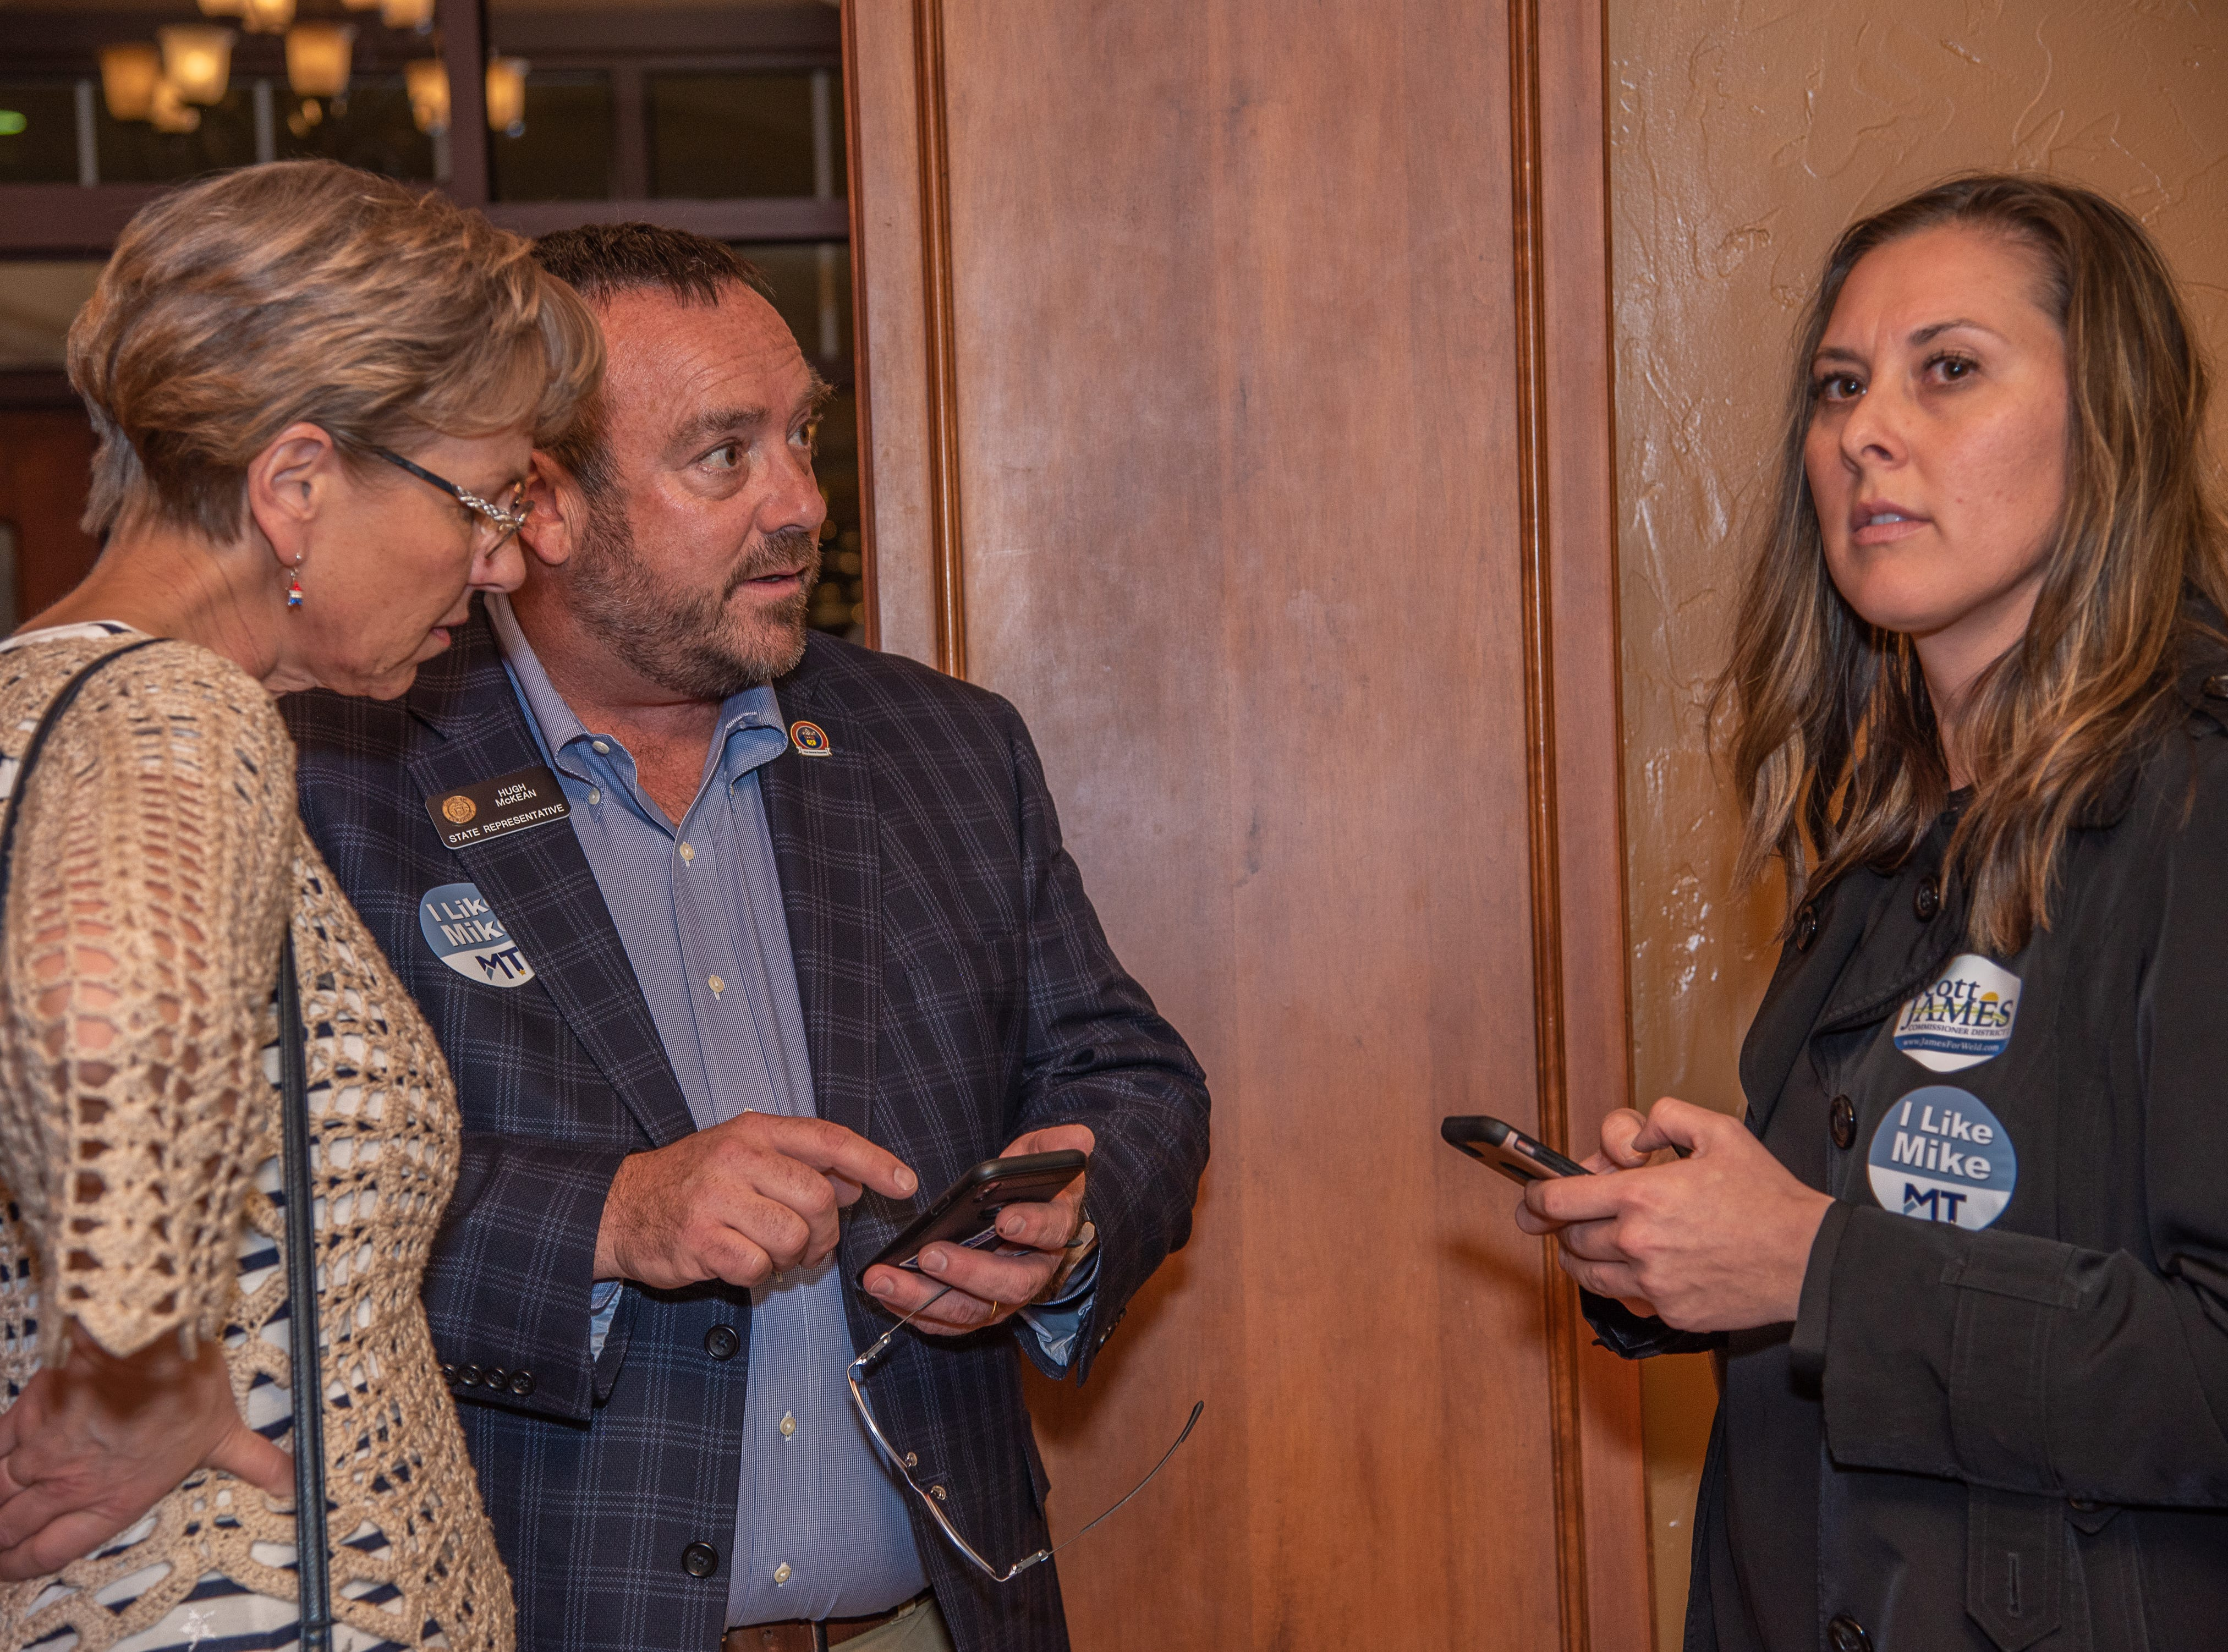 State Rep. Hugh McKean reacts to election results with his wife Kristin McKean and Amy Parks, campaign manager, at a watch party on Tuesday, November 6, 2018, at Ptarmigan Country Club in Fort Collins, Colo.